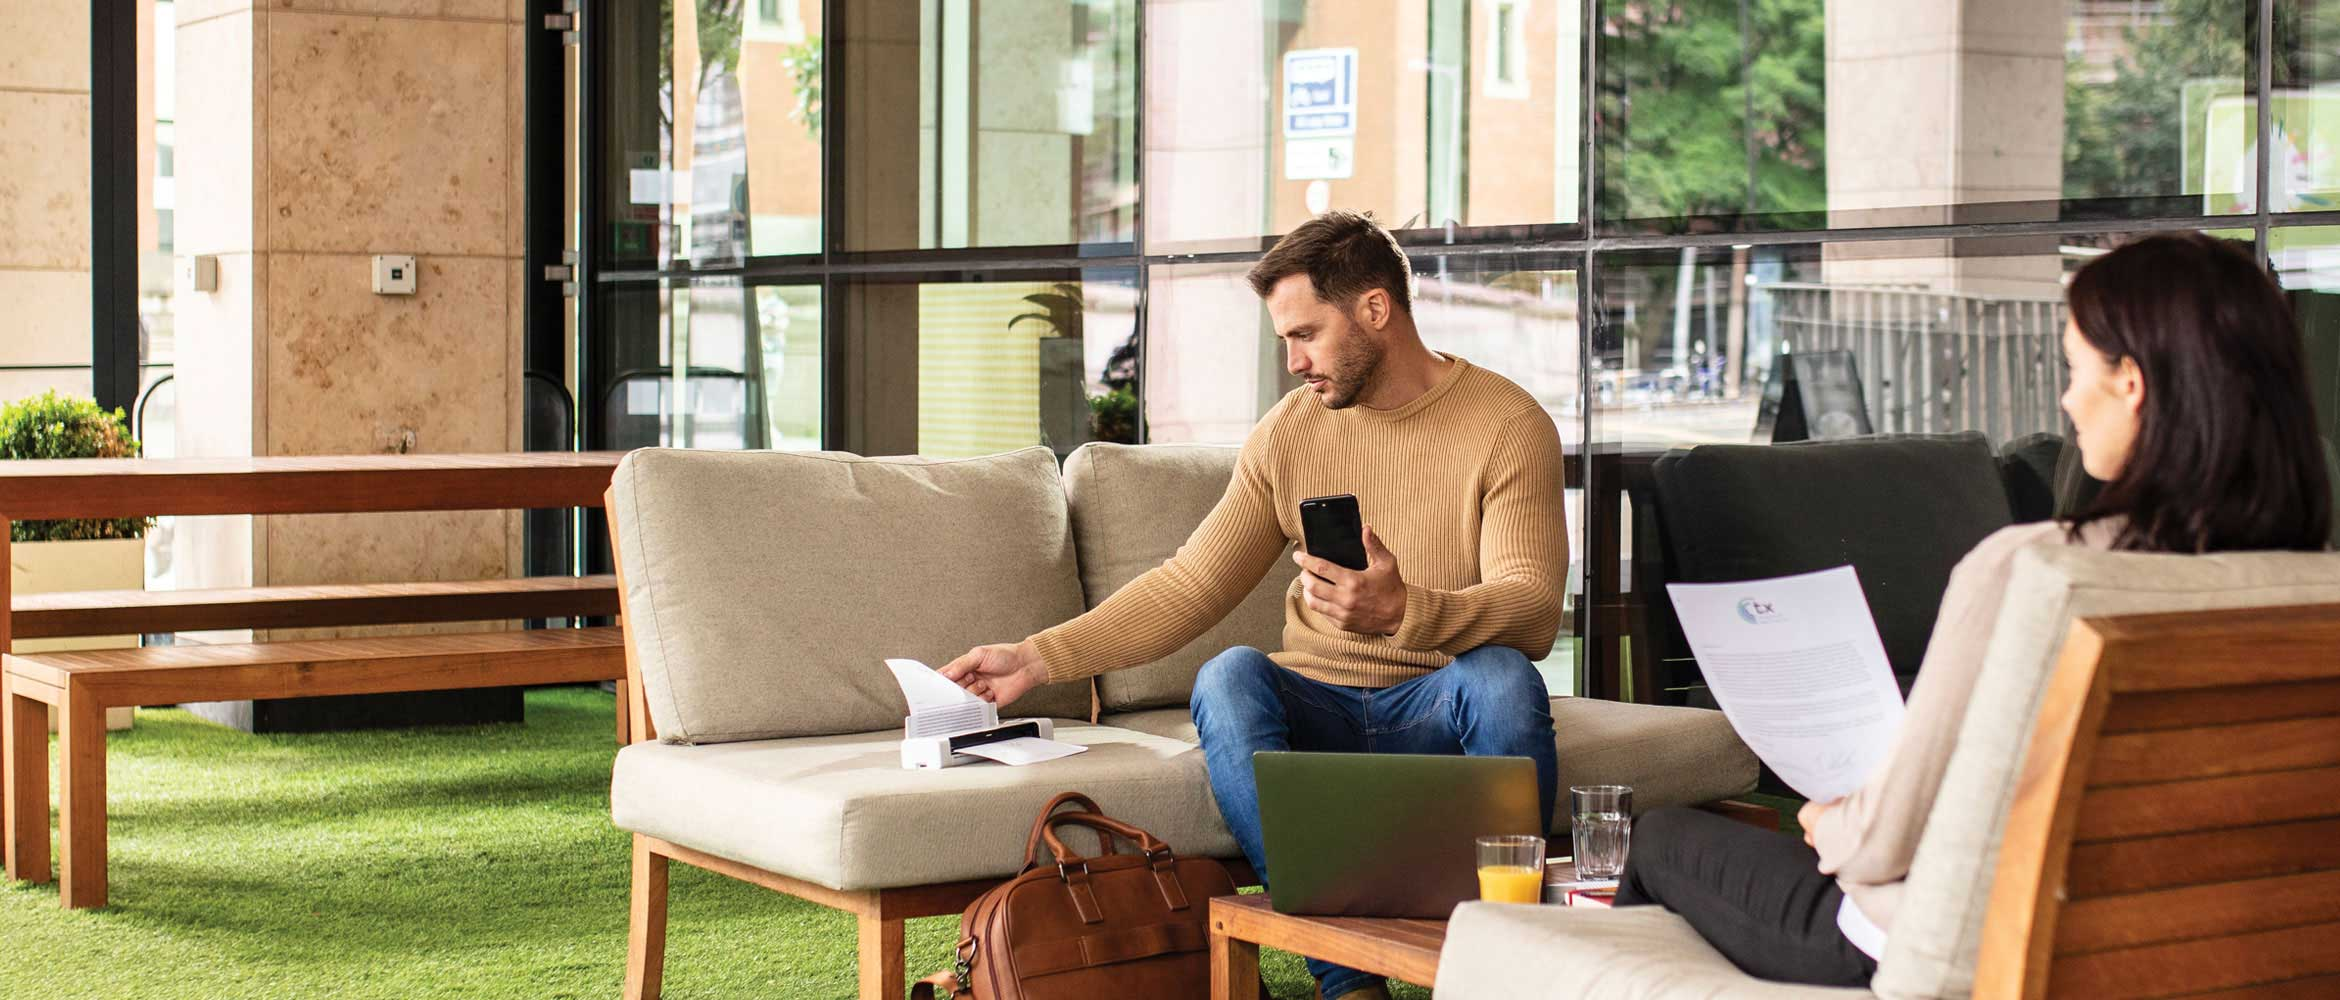 Man sat outdoors holding mobile phone using Brother DSmobile DS-940DW opposite woman holding A4 documemt, grass, wooden bench, plants